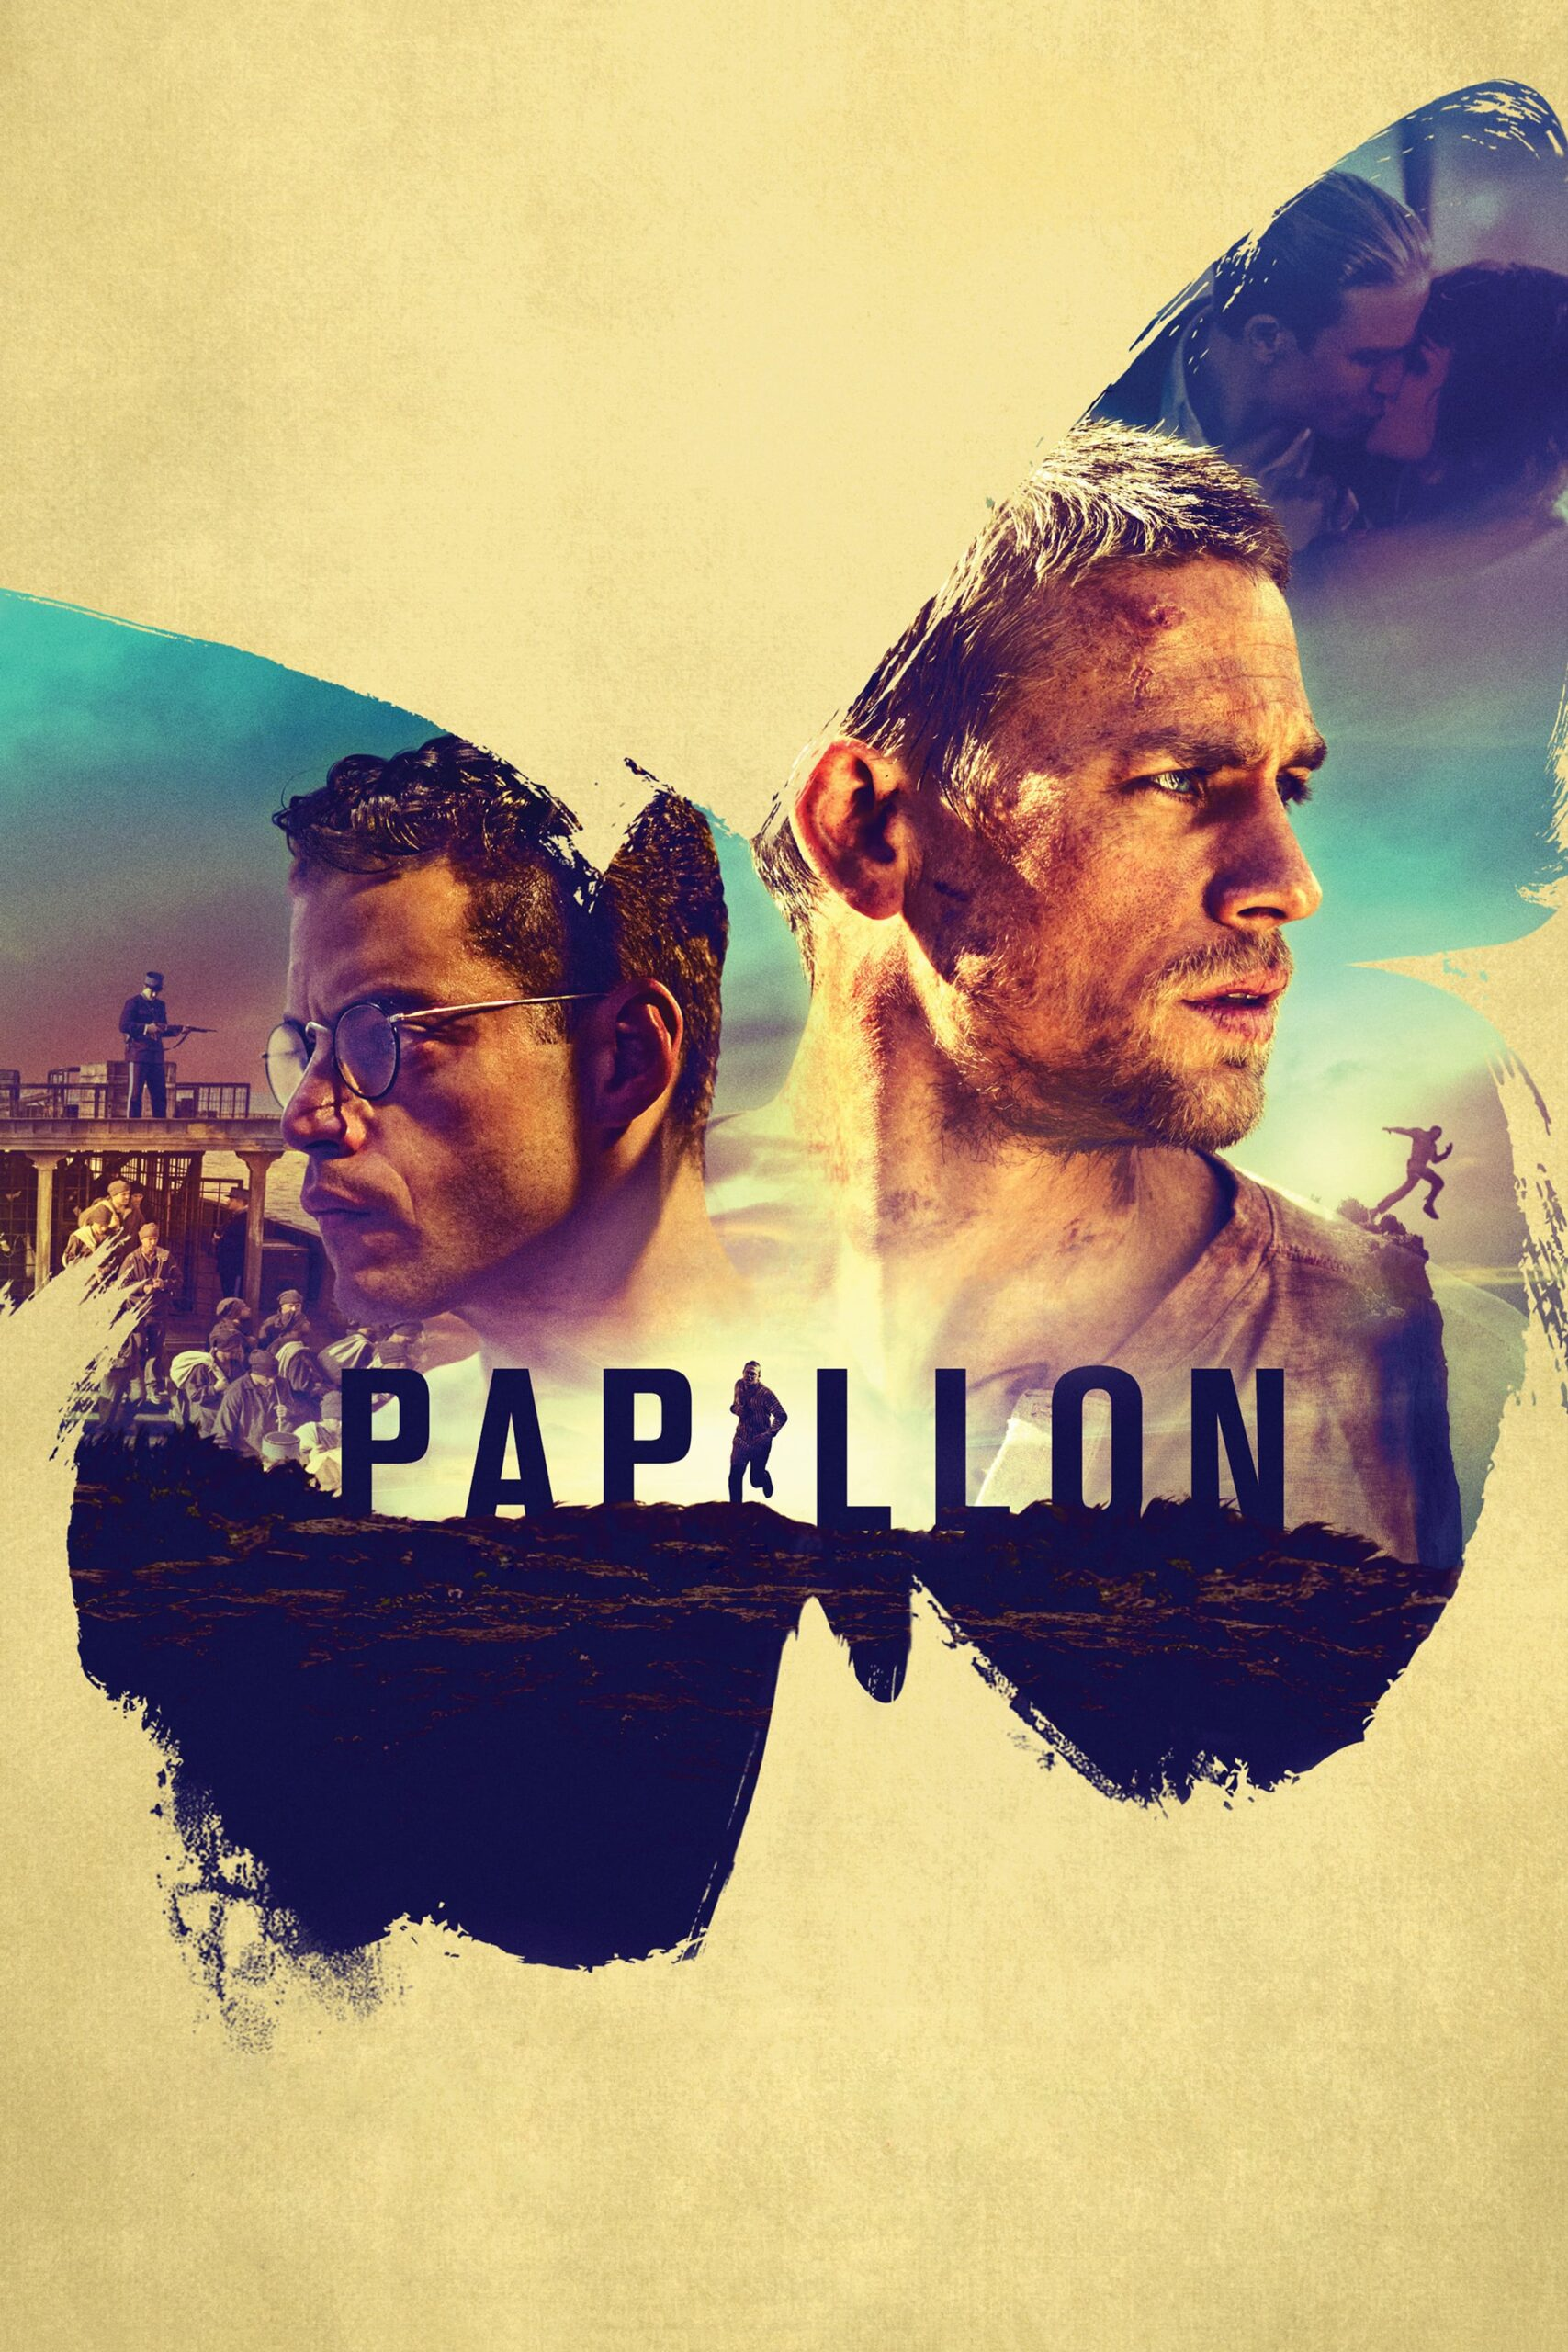 Papillon Movie Streaming Online Watch on Google Play, Youtube, iTunes